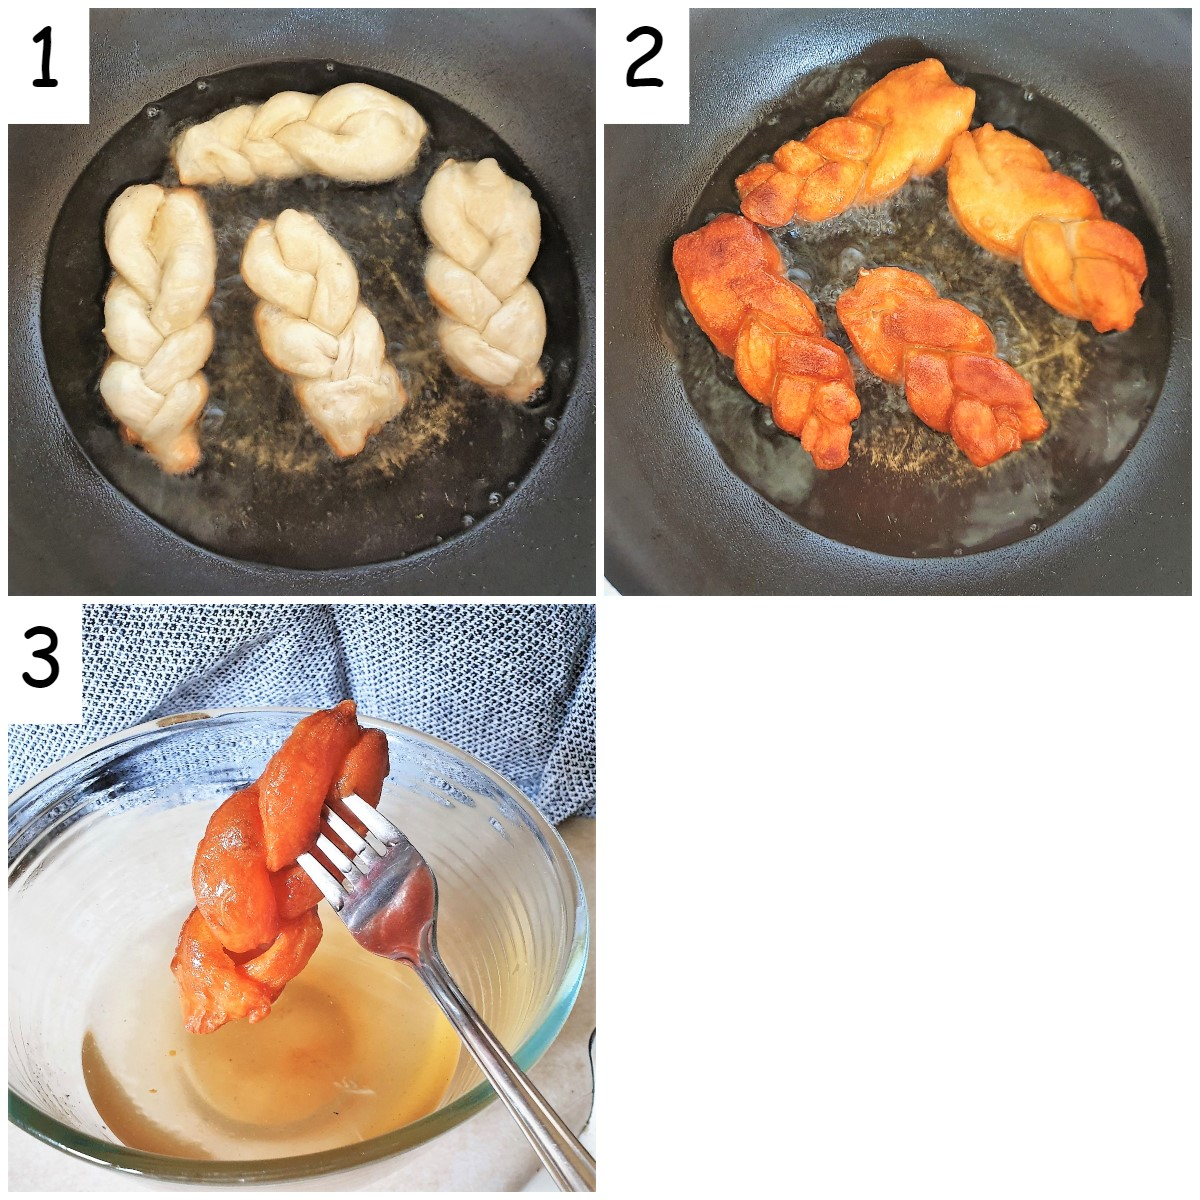 A collage of 3 images showing steps for frying and dunking the koeksisters.